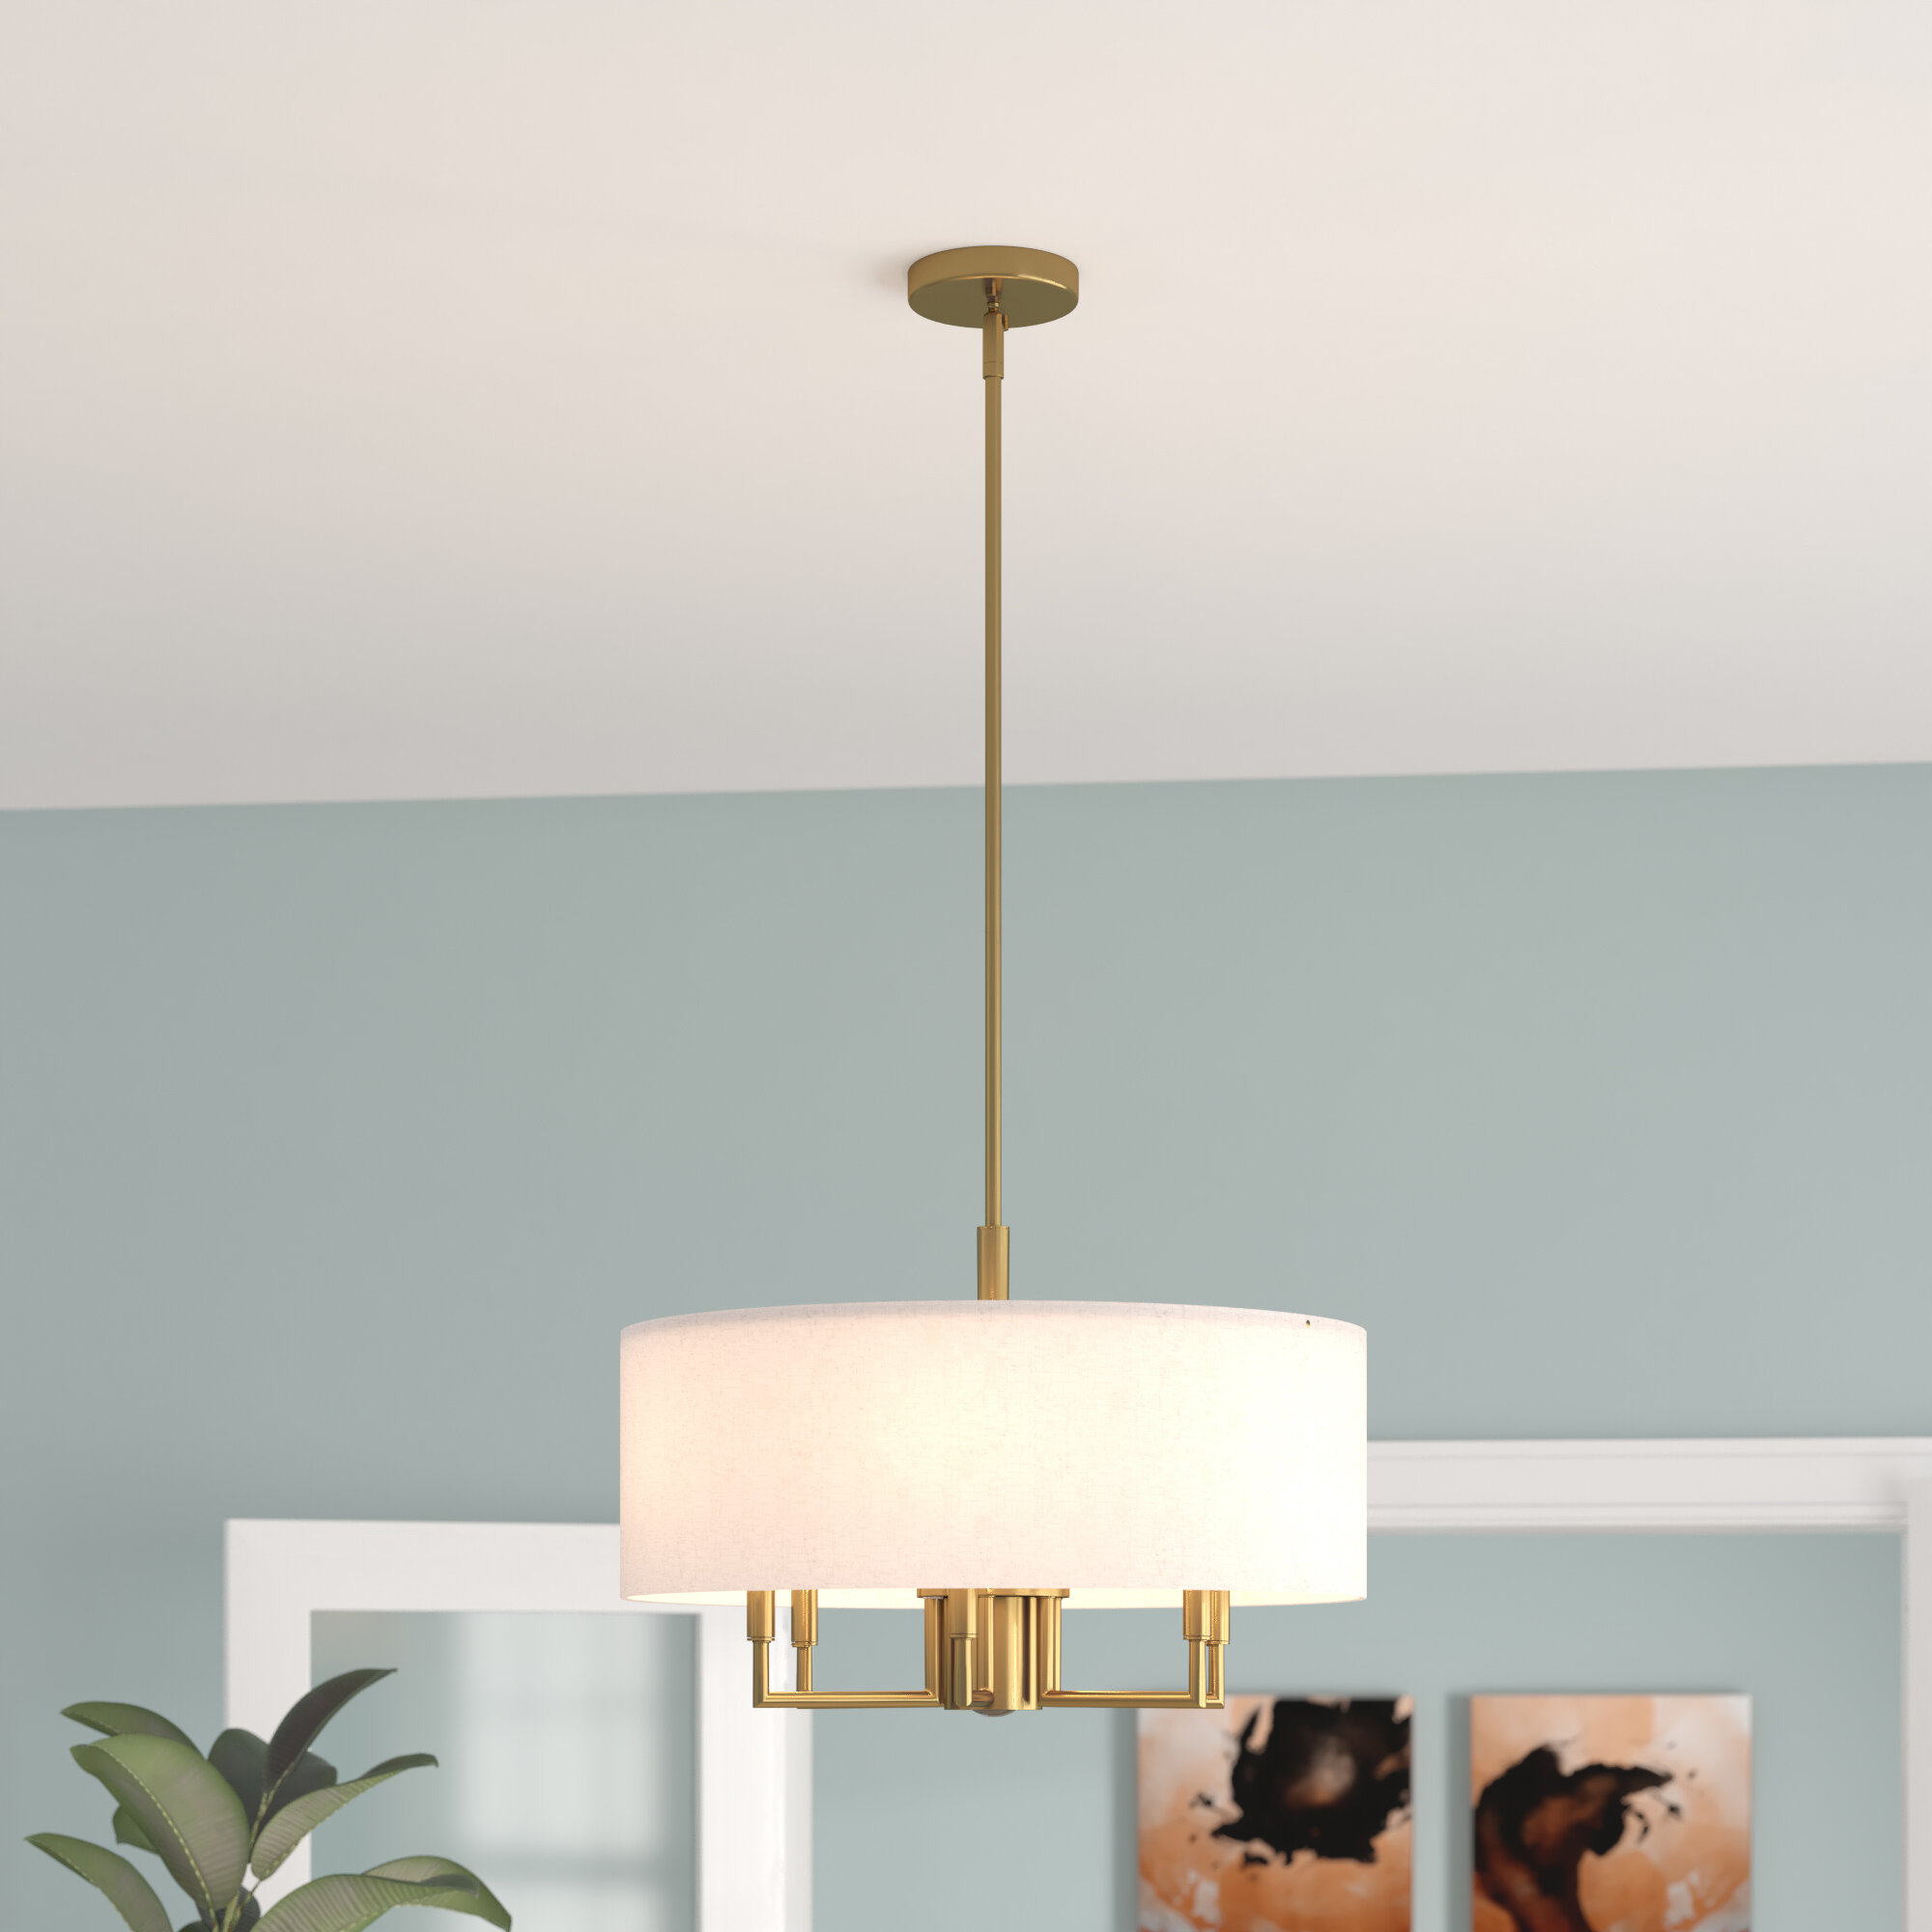 Ivy Bronx Alina 6 Light Drum Chandelier & Reviews | Wayfair Throughout Alina 5 Light Drum Chandeliers (View 6 of 30)